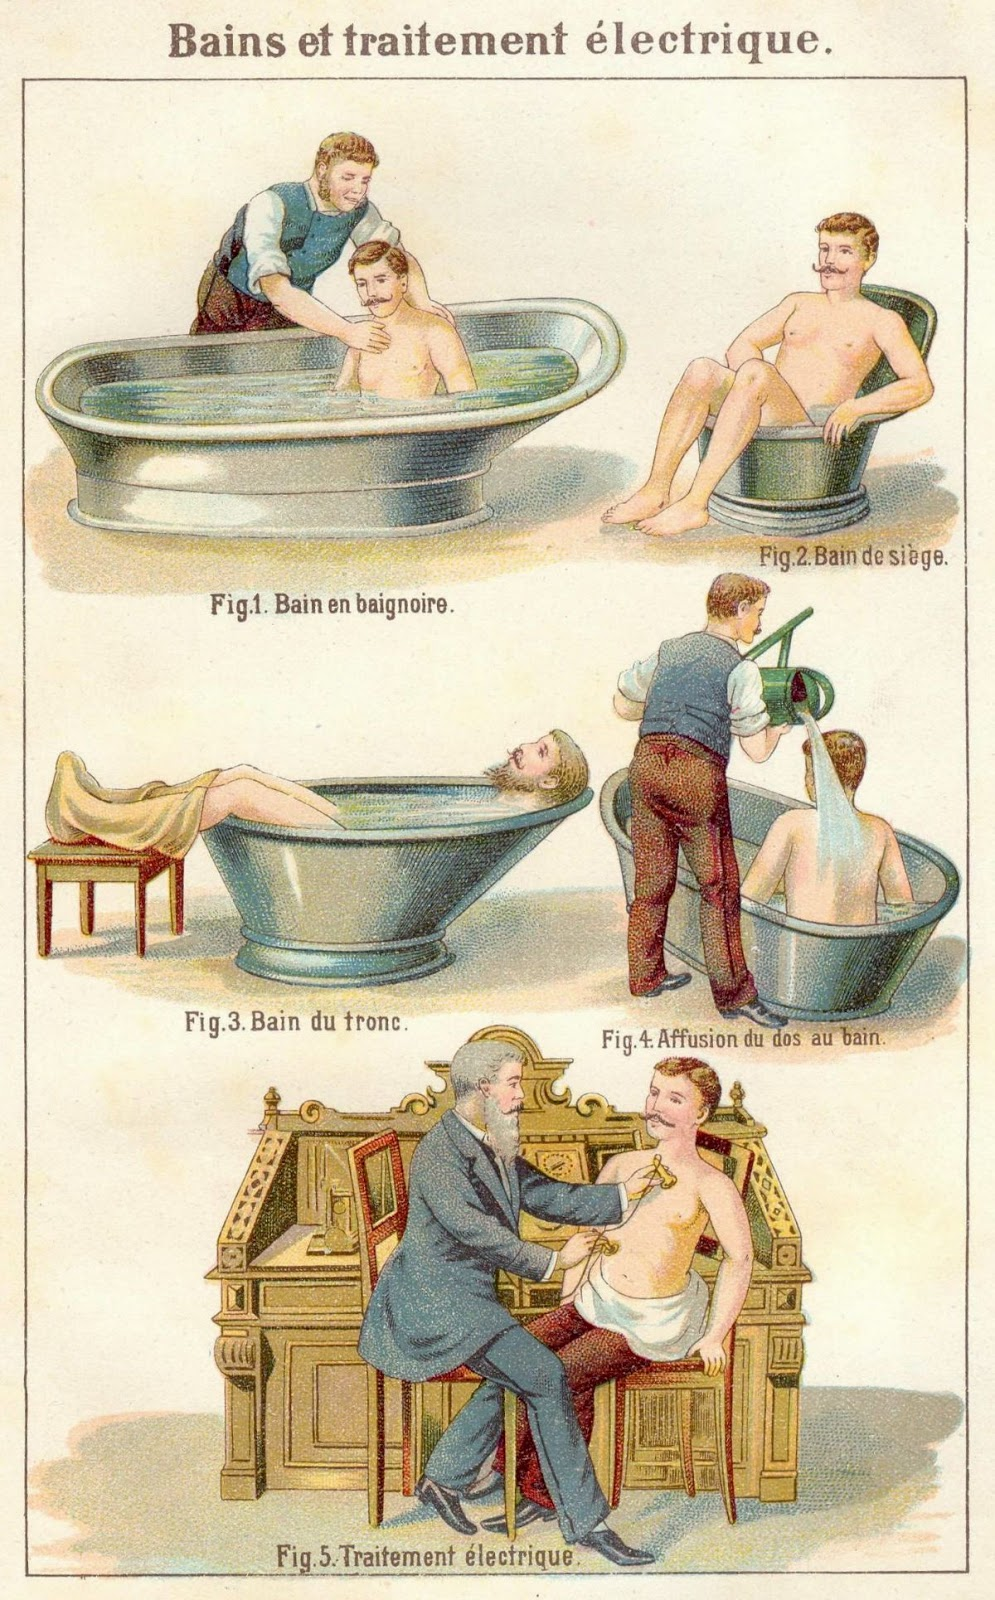 How To Take a Steam Bath, And Other Victorian Visual Health Guides